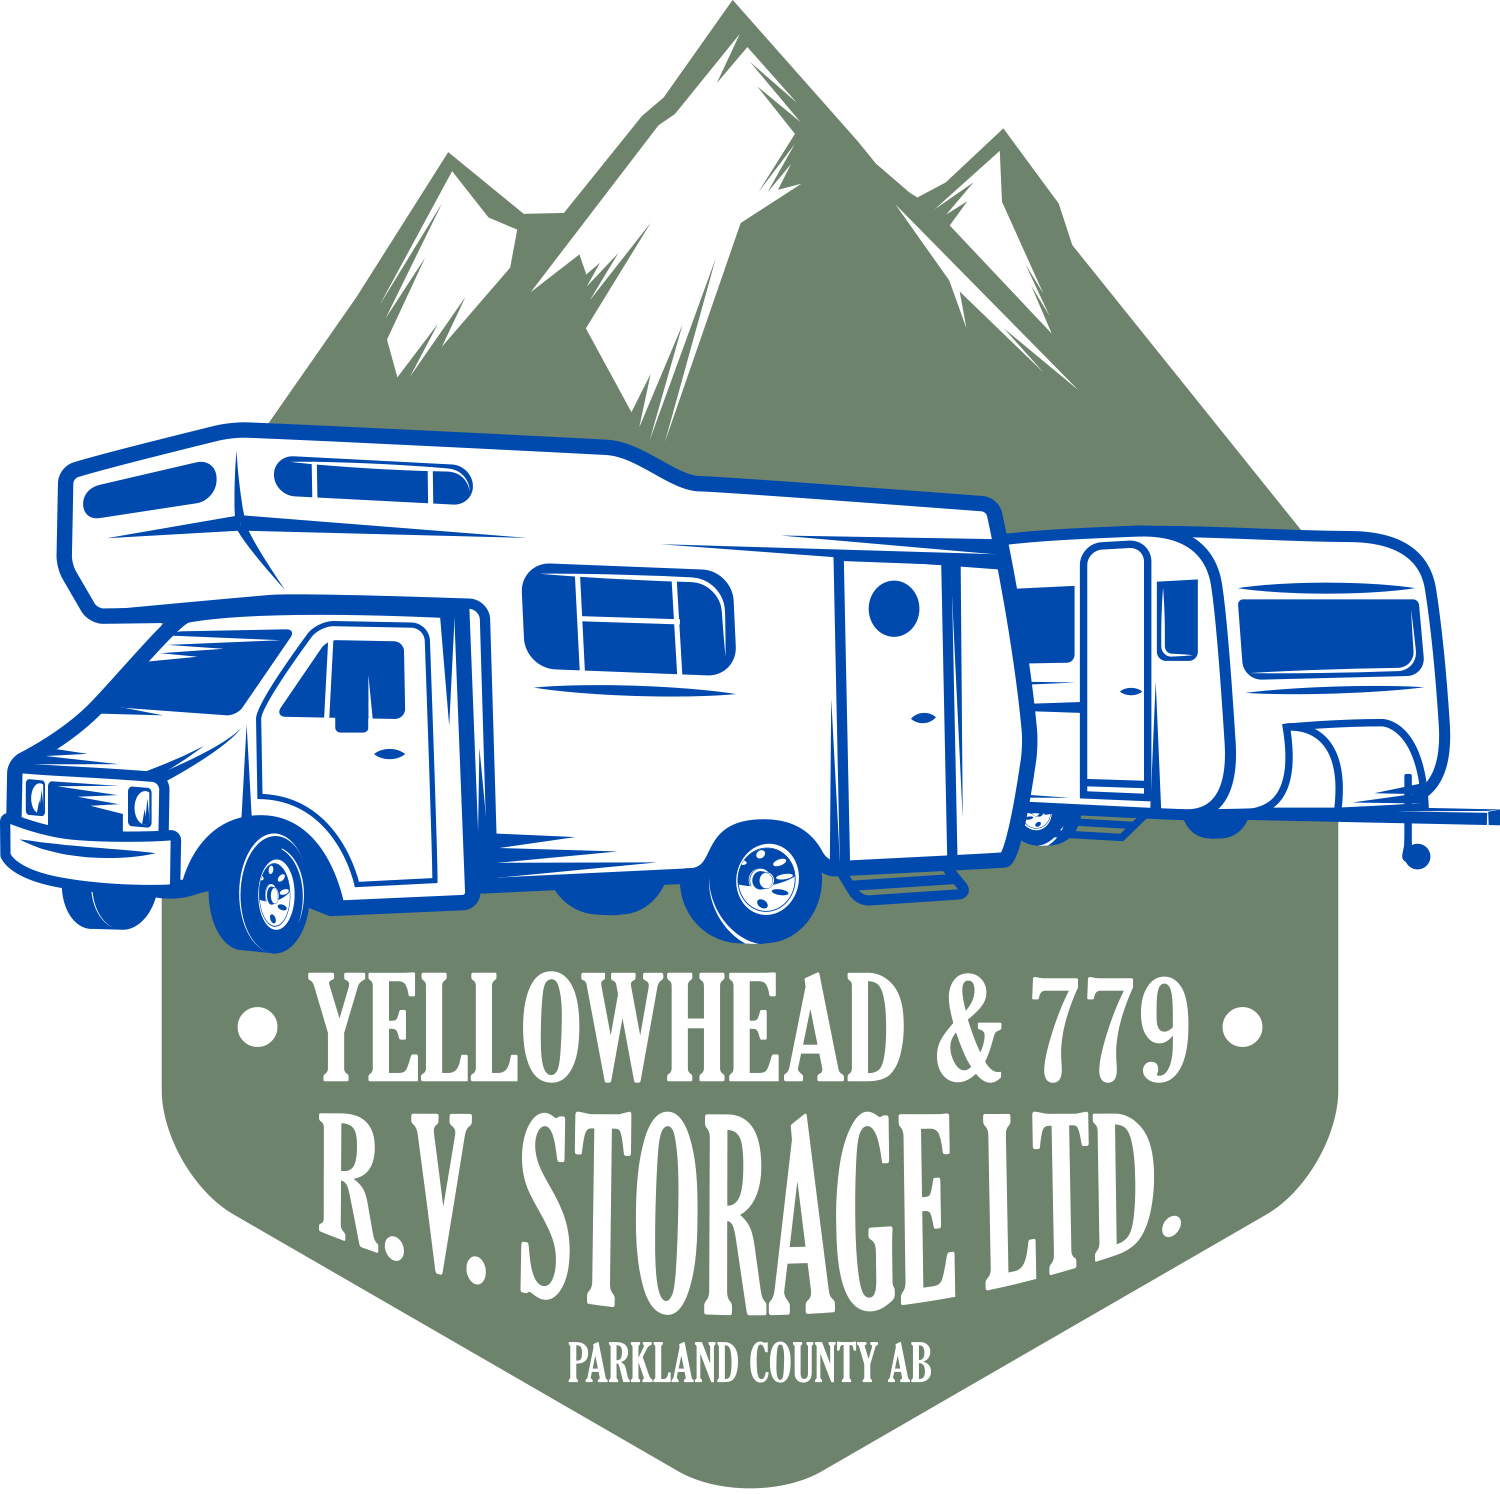 YELLOWHEAD & 779 R.V. STORAGE